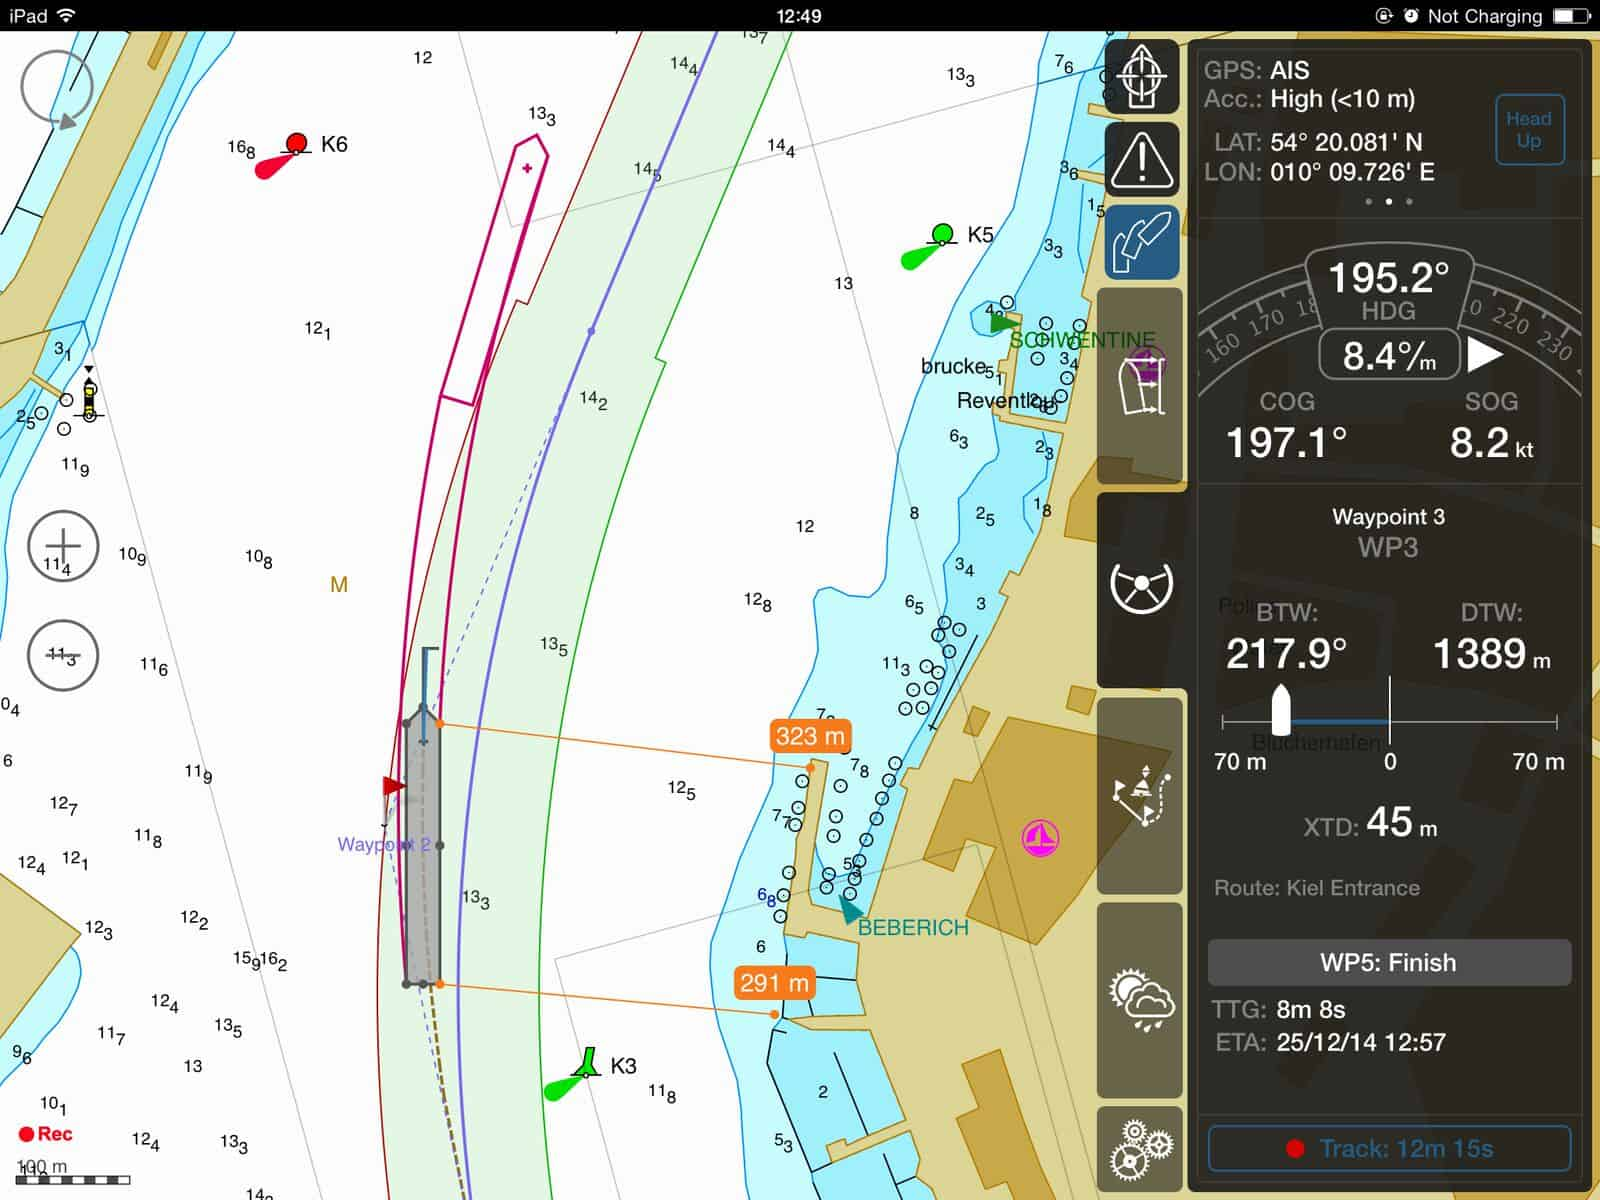 New version of Transas Pilot PRO makes life easier for pilots and